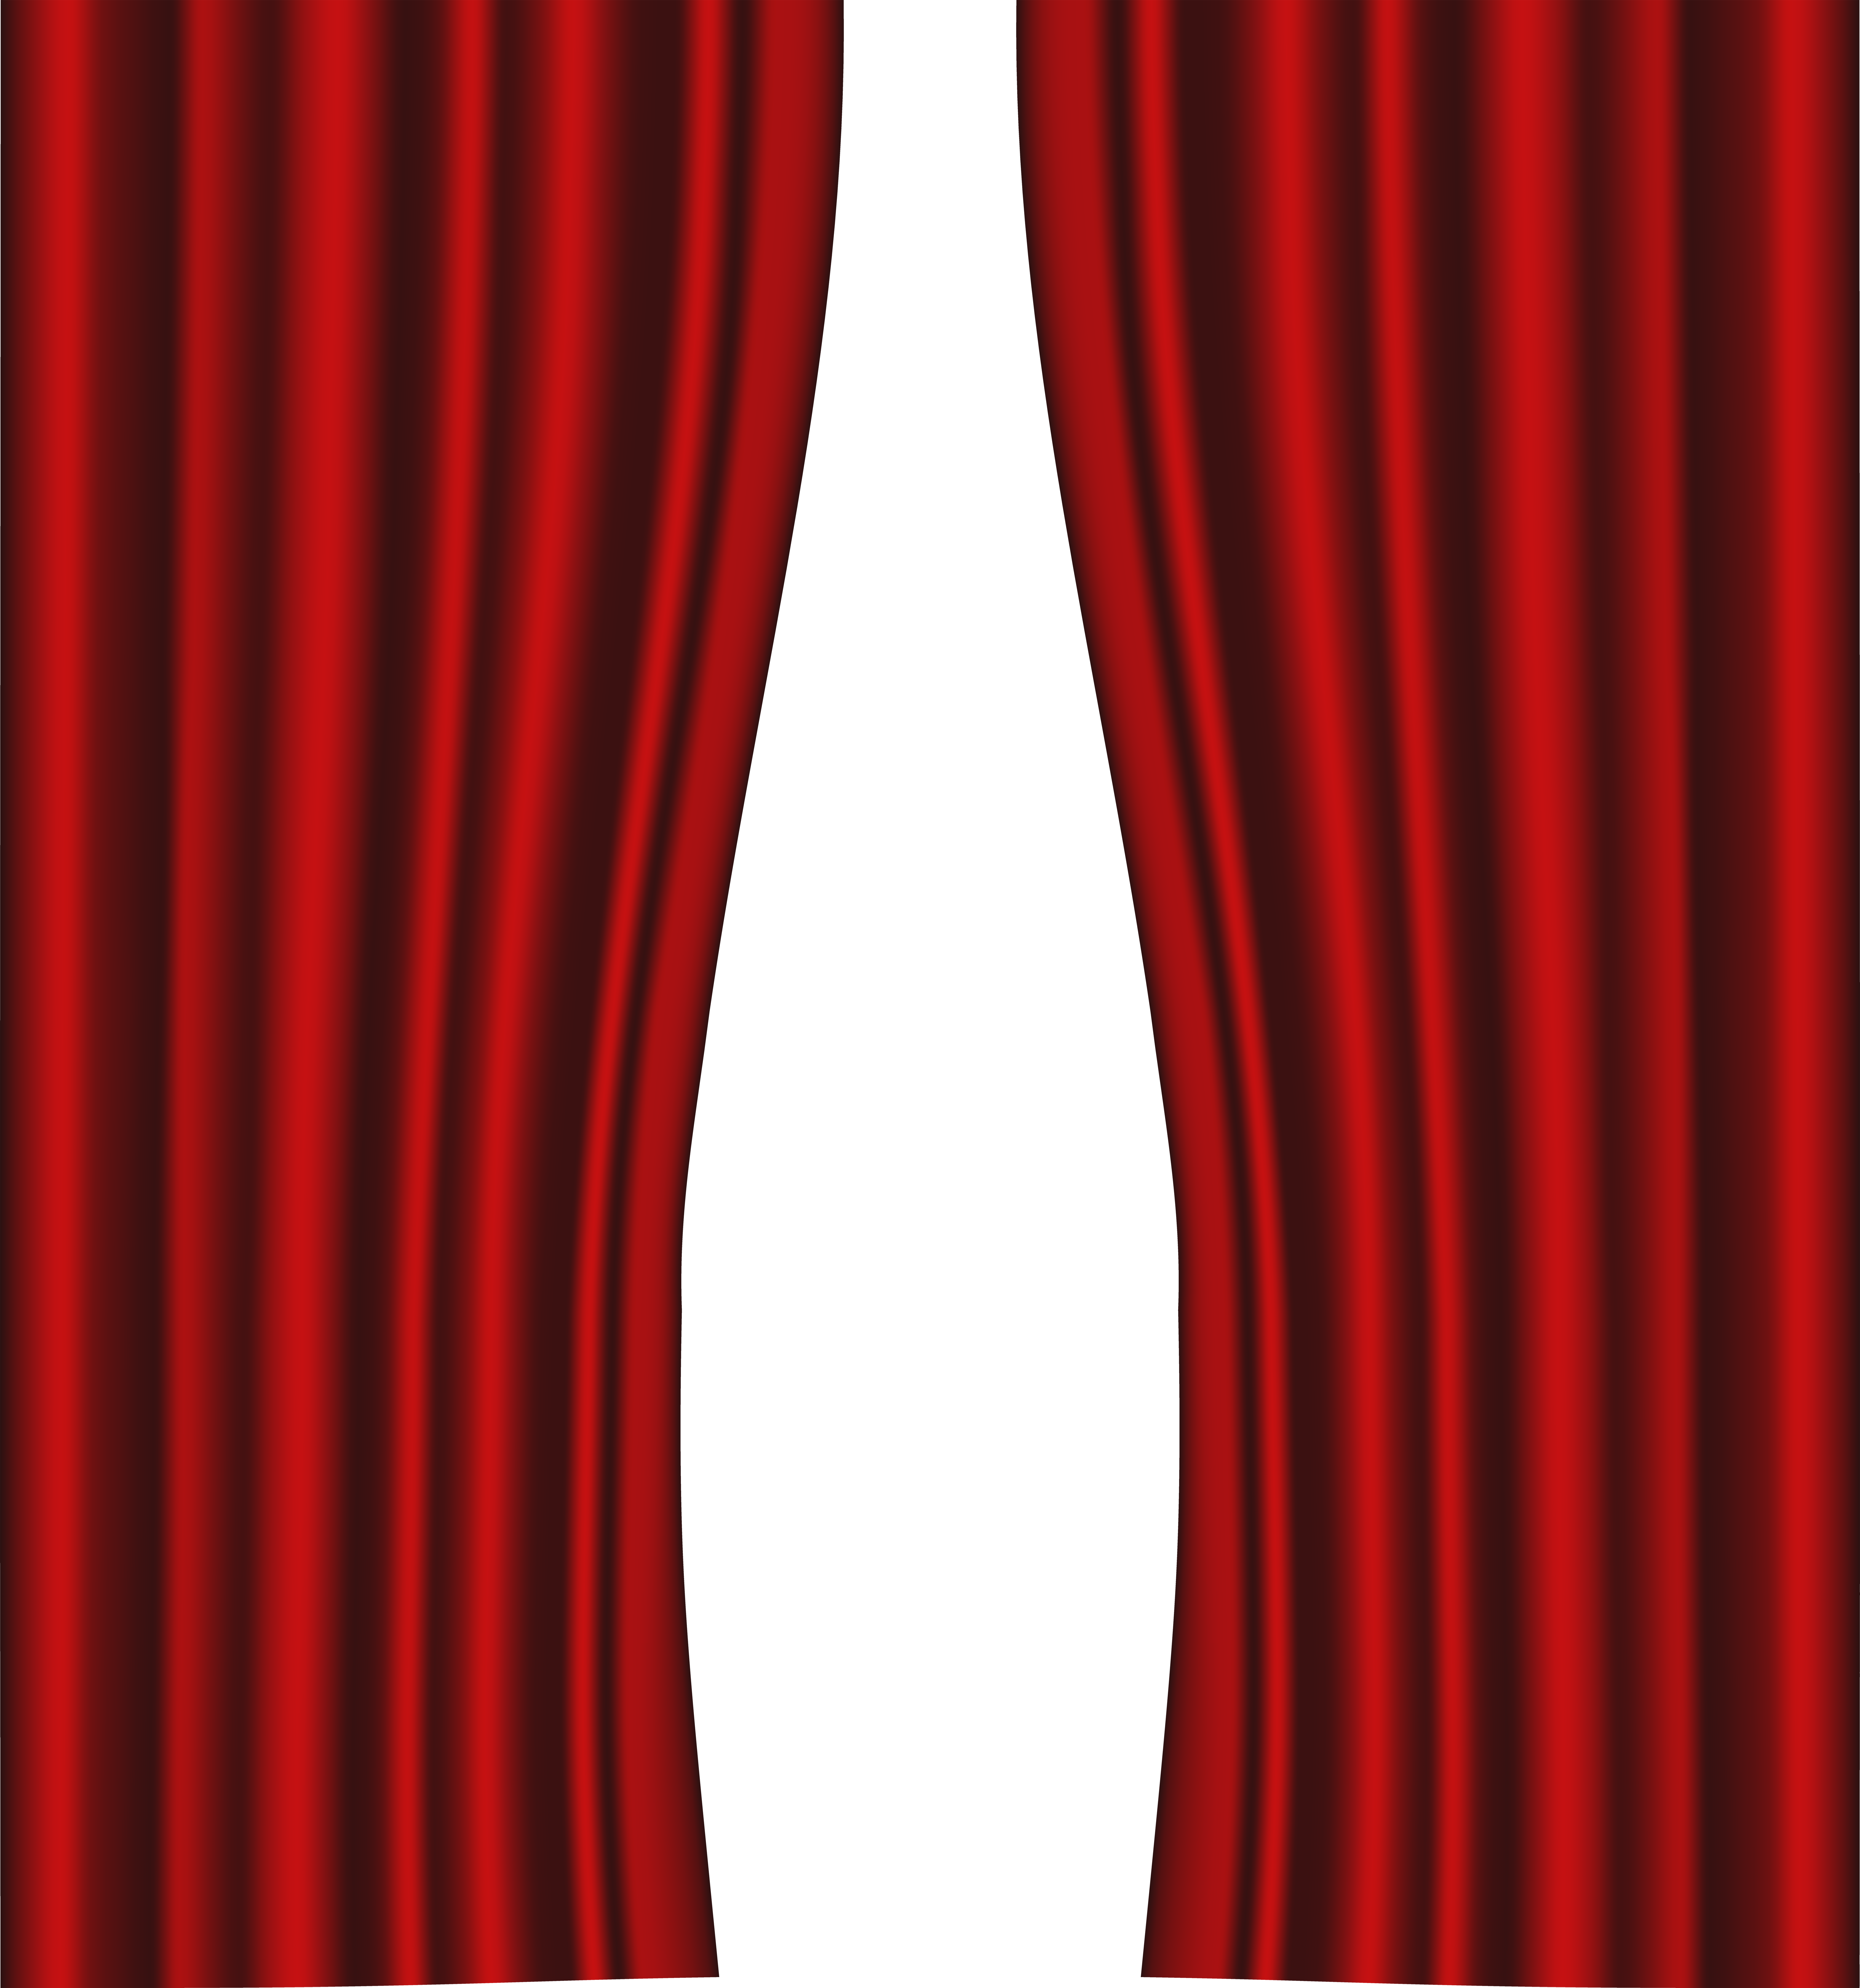 Drapery clip ball. Red curtain image